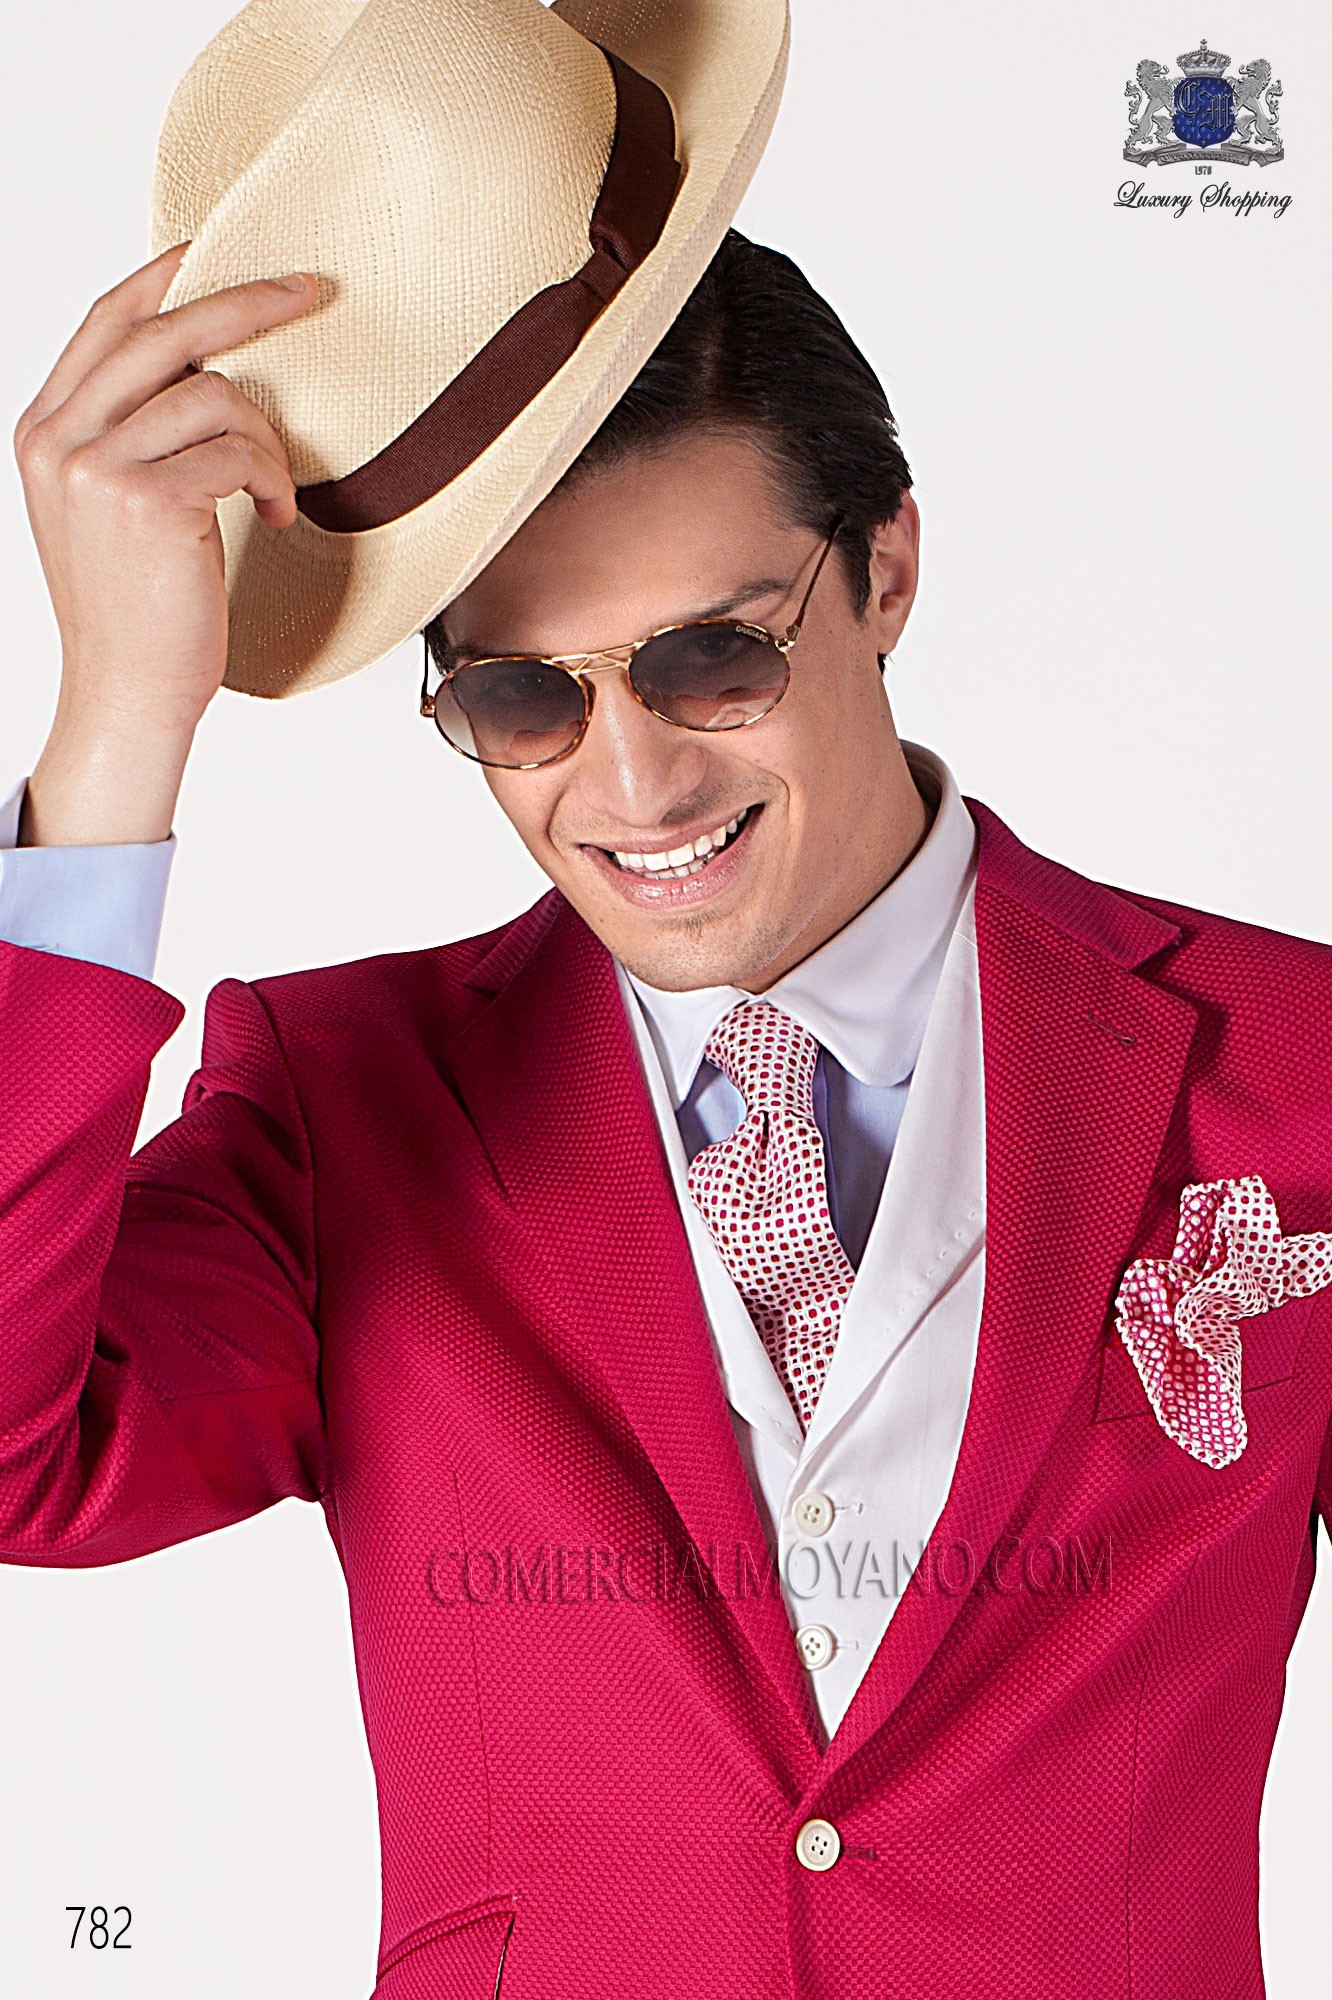 Italian hipster fuchsia men wedding suit, model: 782 Ottavio Nuccio Gala 2017 Hipster Collection